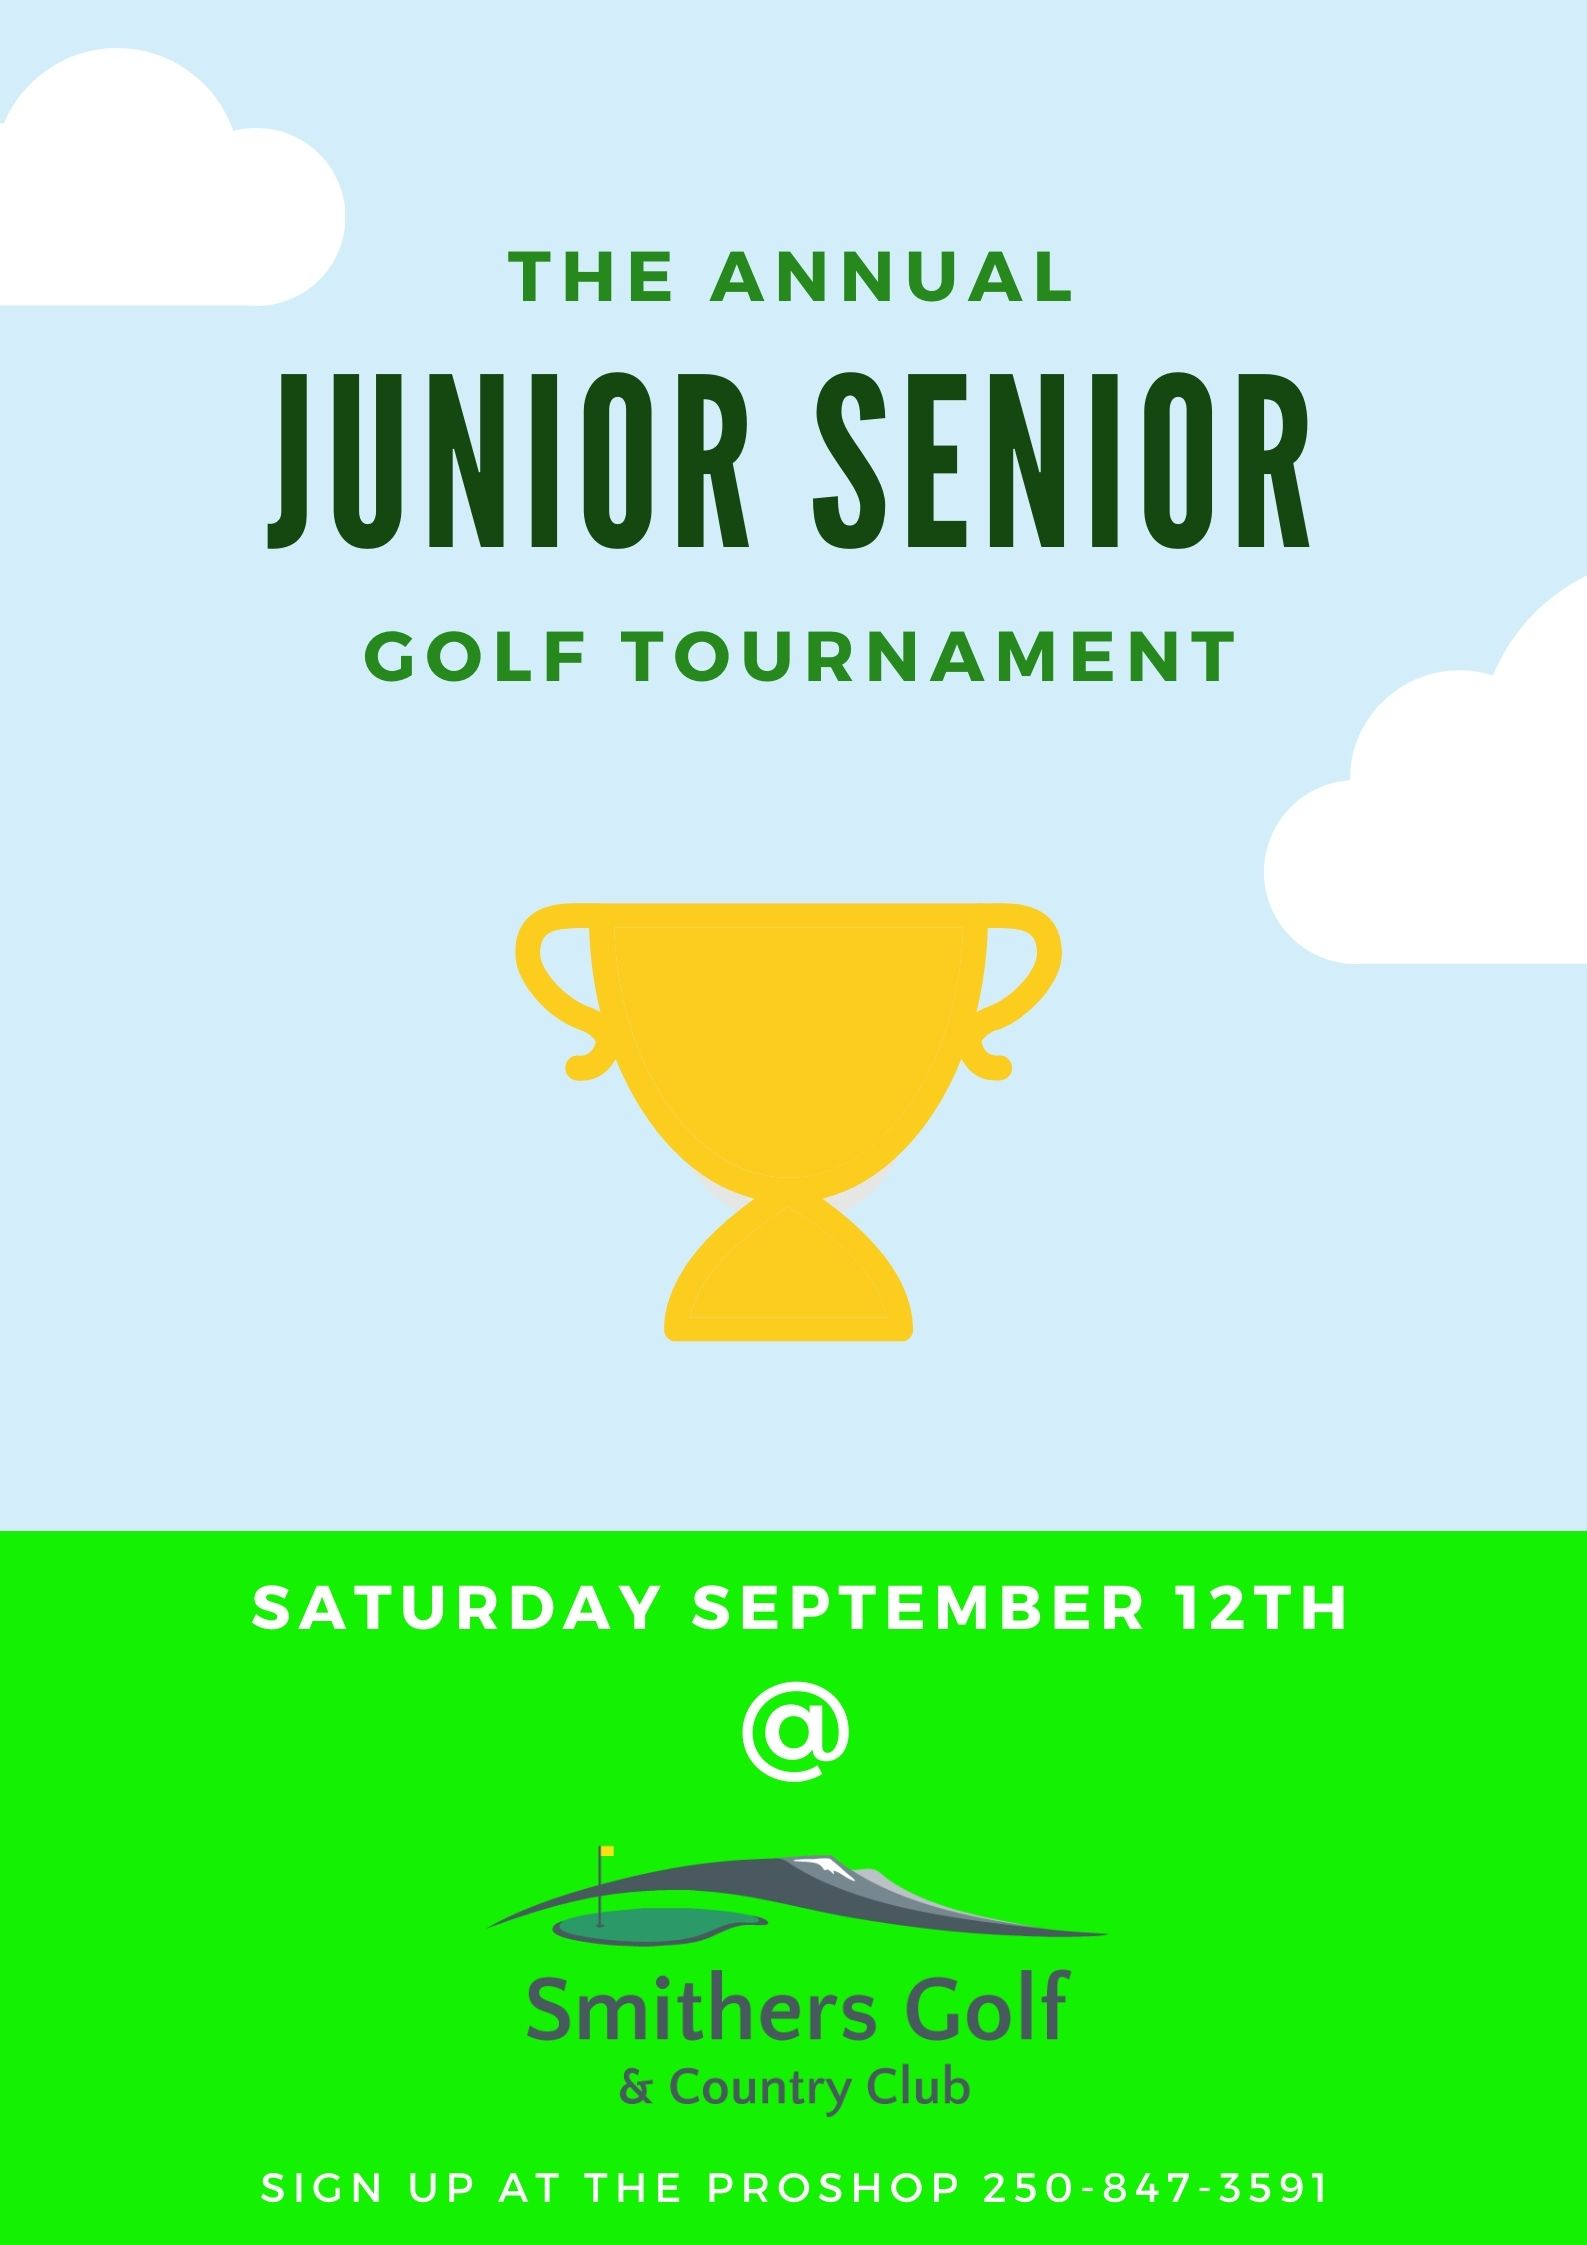 The Annual Junior Senior Tournament